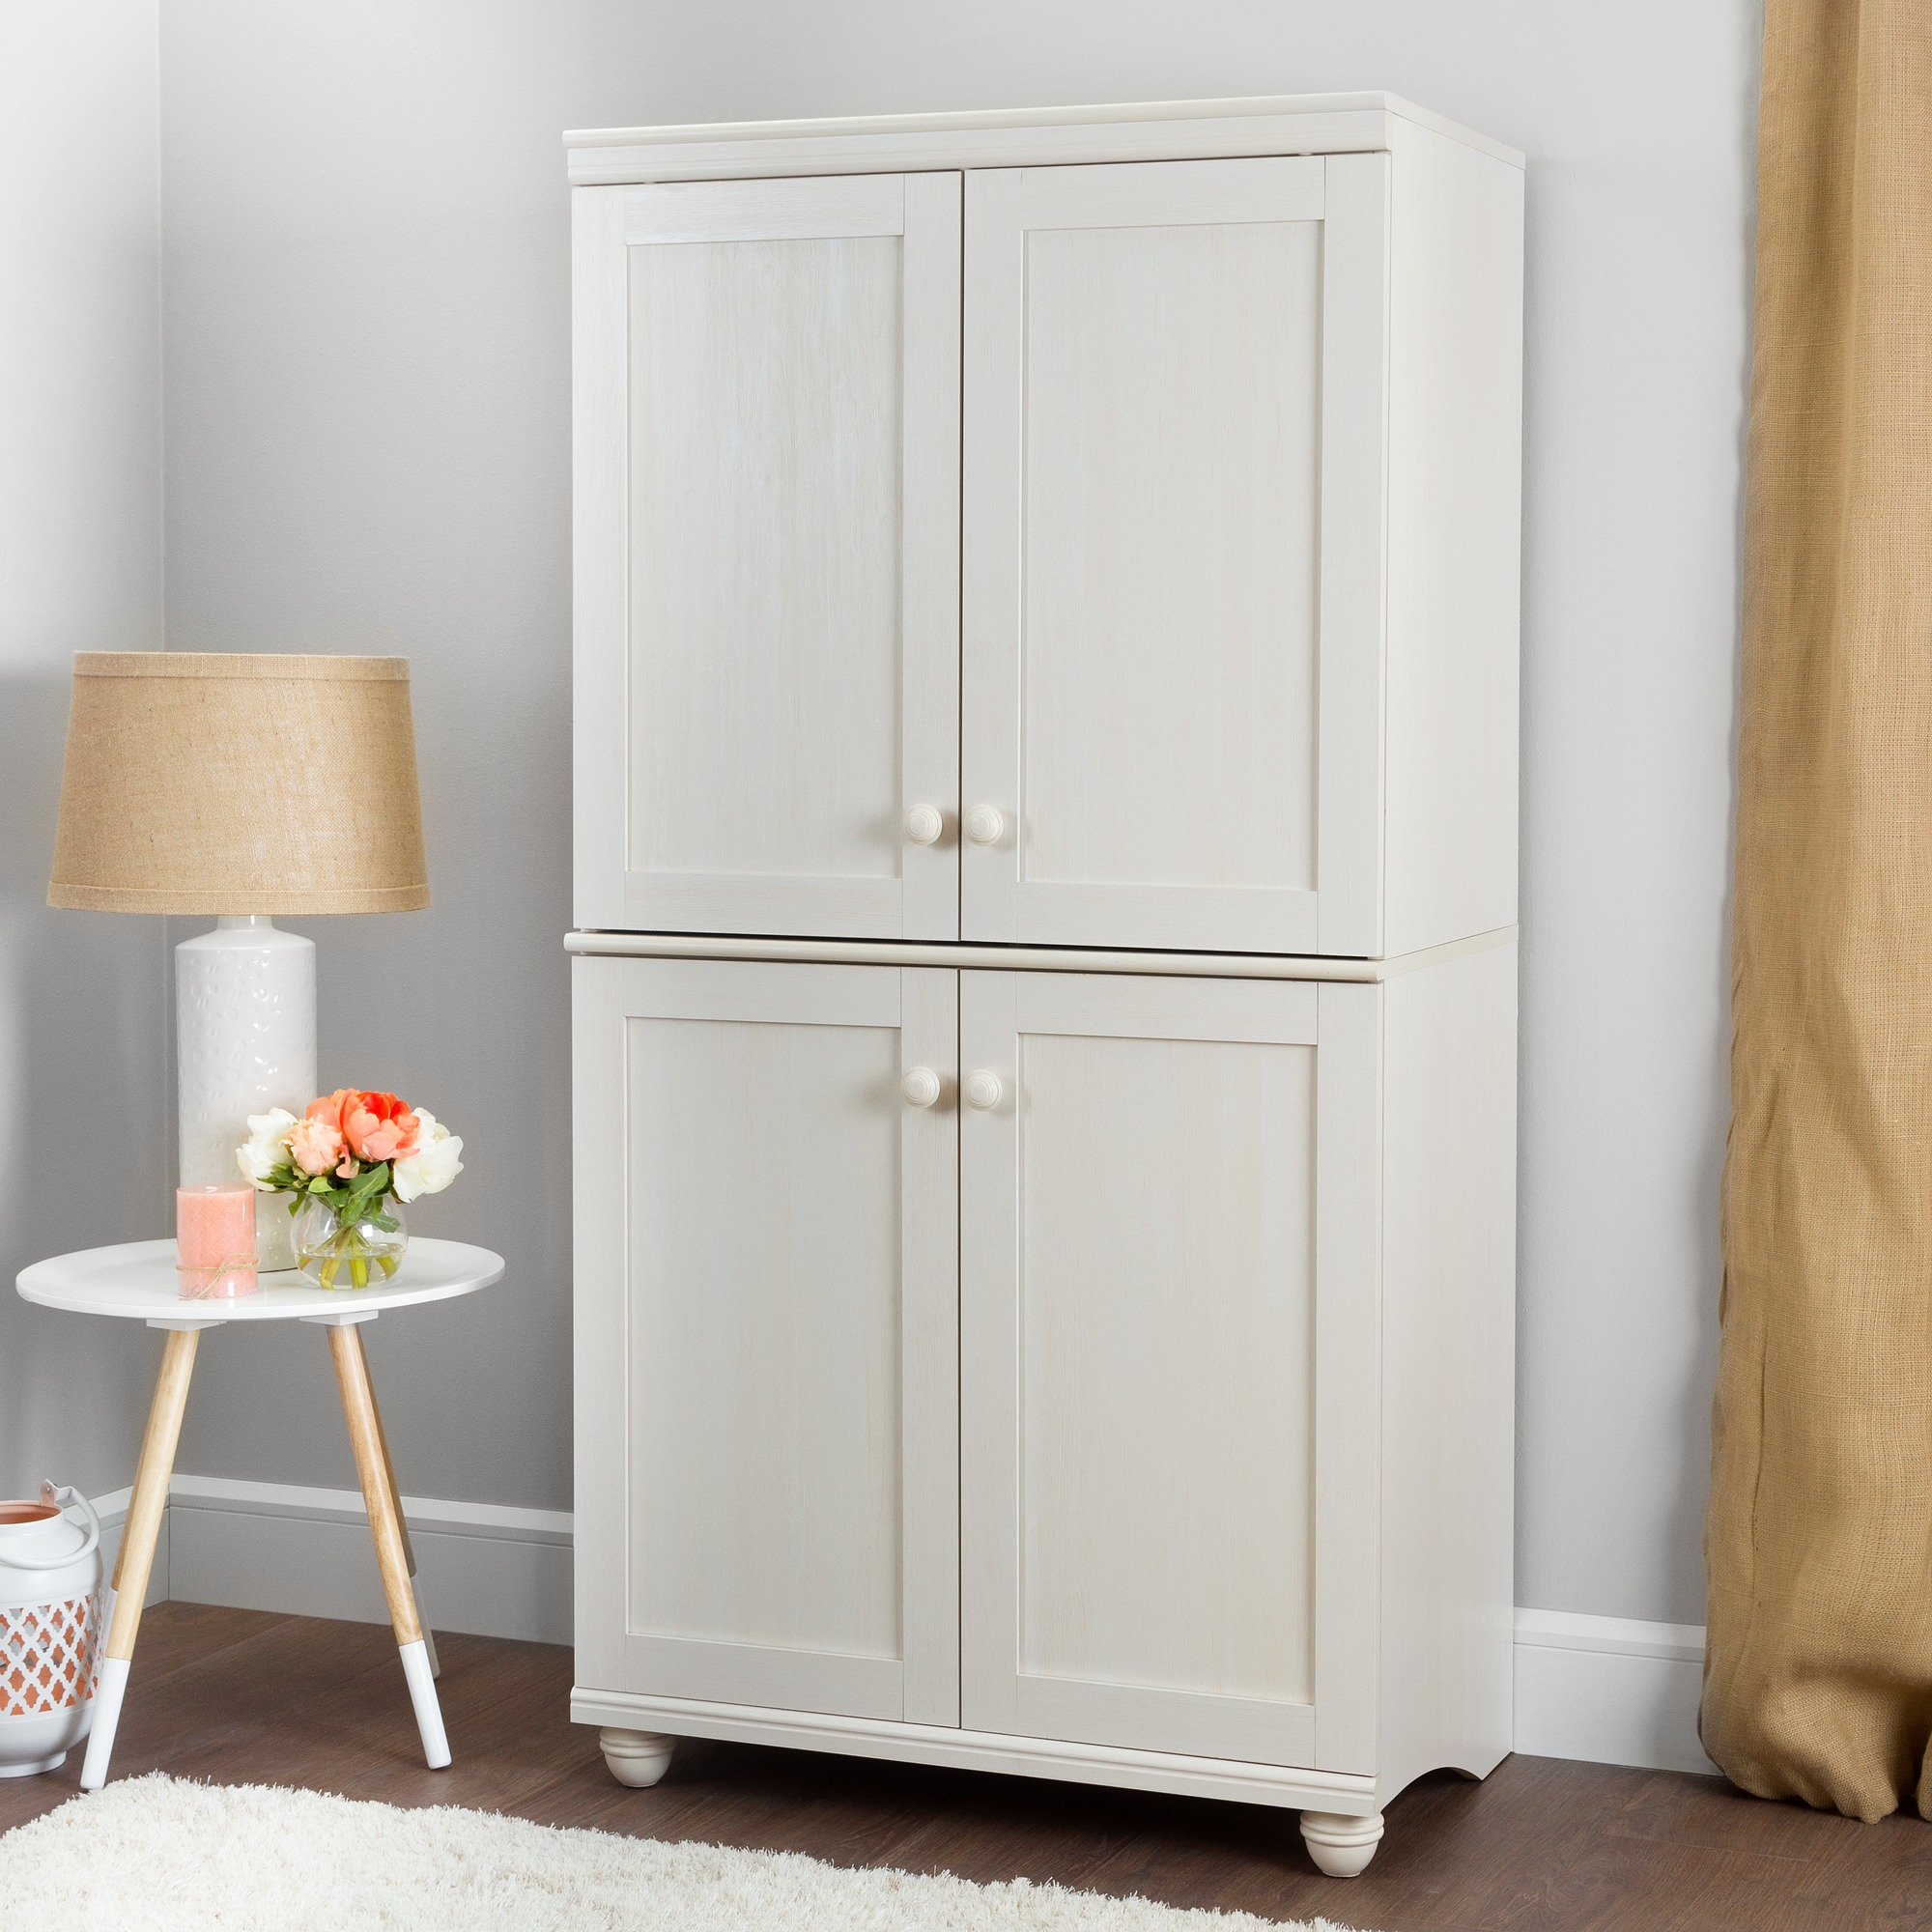 South Shore Hopedale 4 Door Storage Armoire, Multiple Finishes